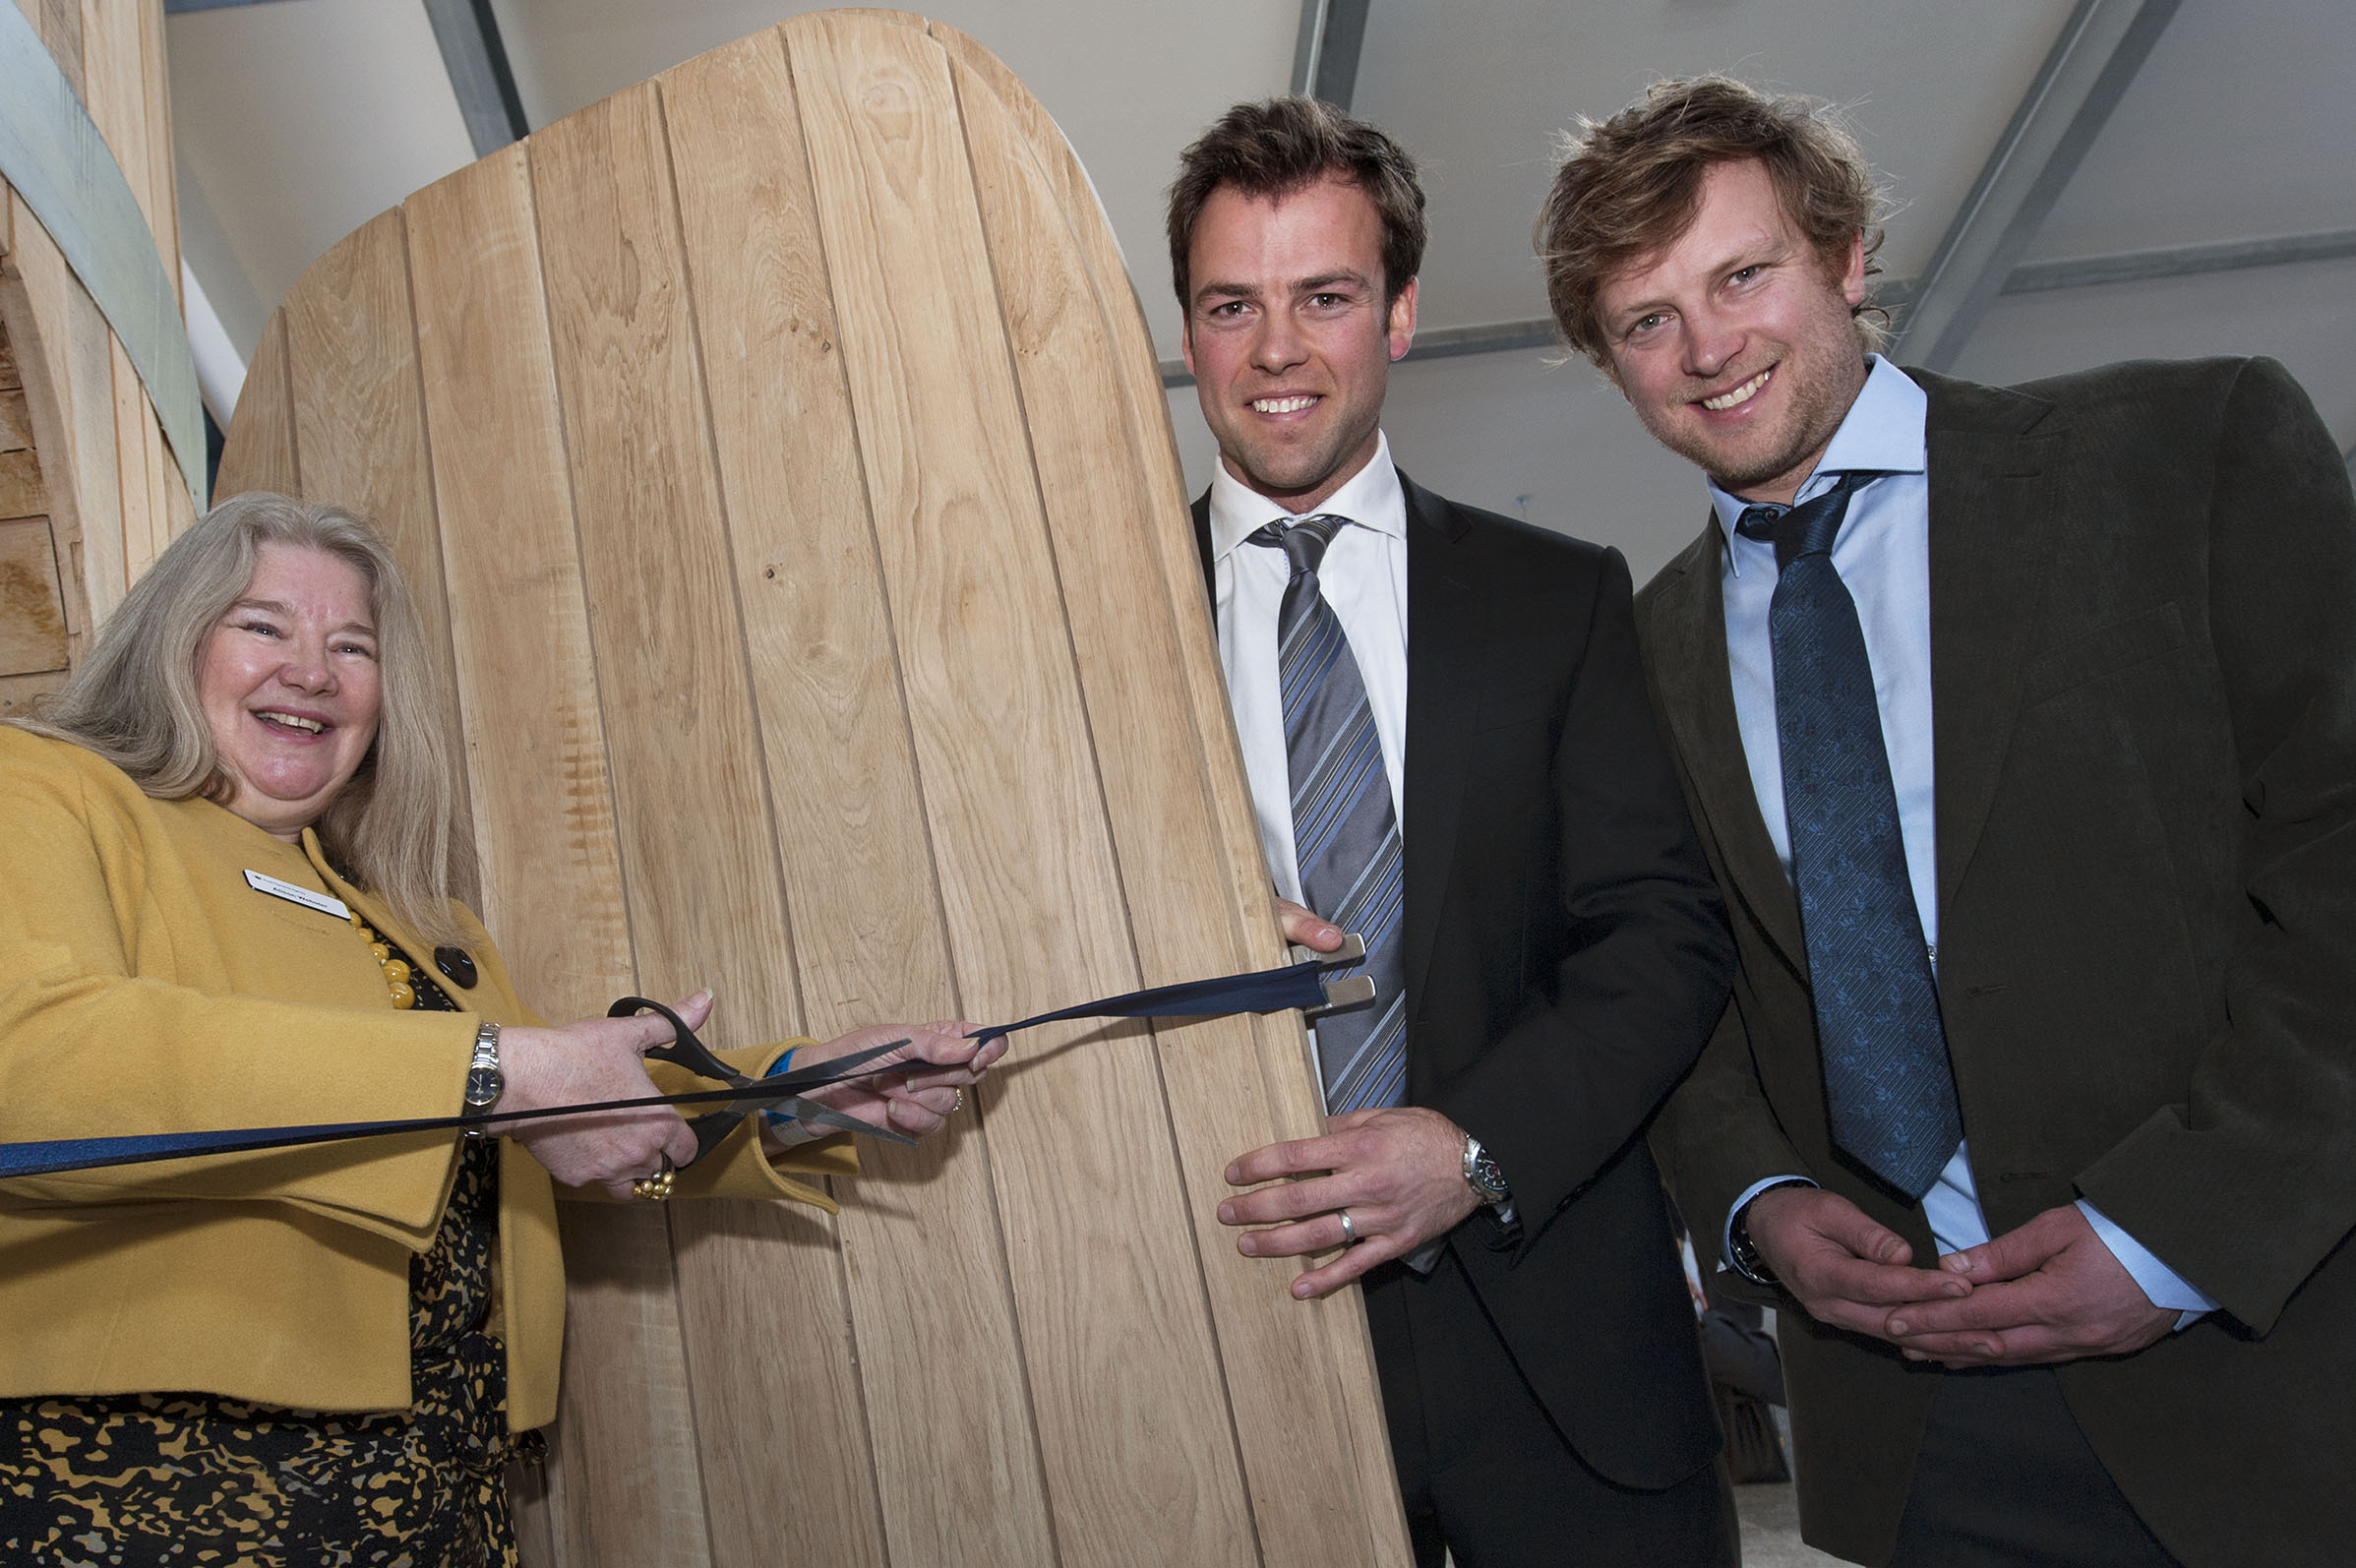 Alison Webster cuts the ribbon with Joe (centre) and Sam Healey